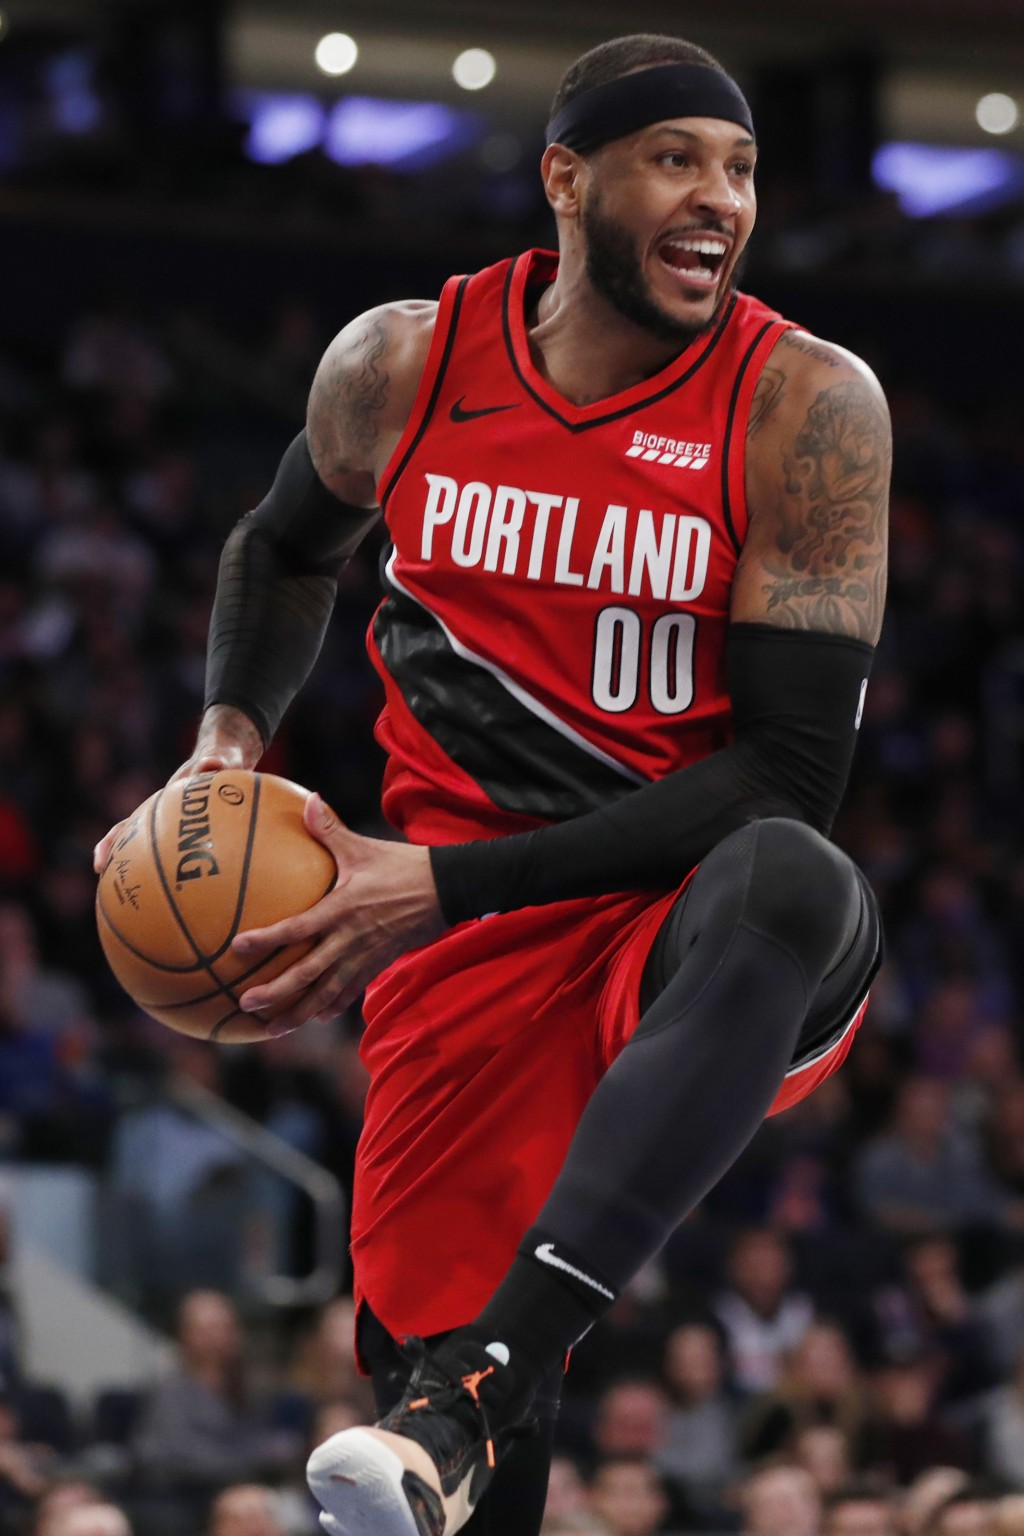 Portland Trail Blazers forward Carmelo Anthony pulls down a rebound during the second half of the team's NBA basketball game against the New York Knic...